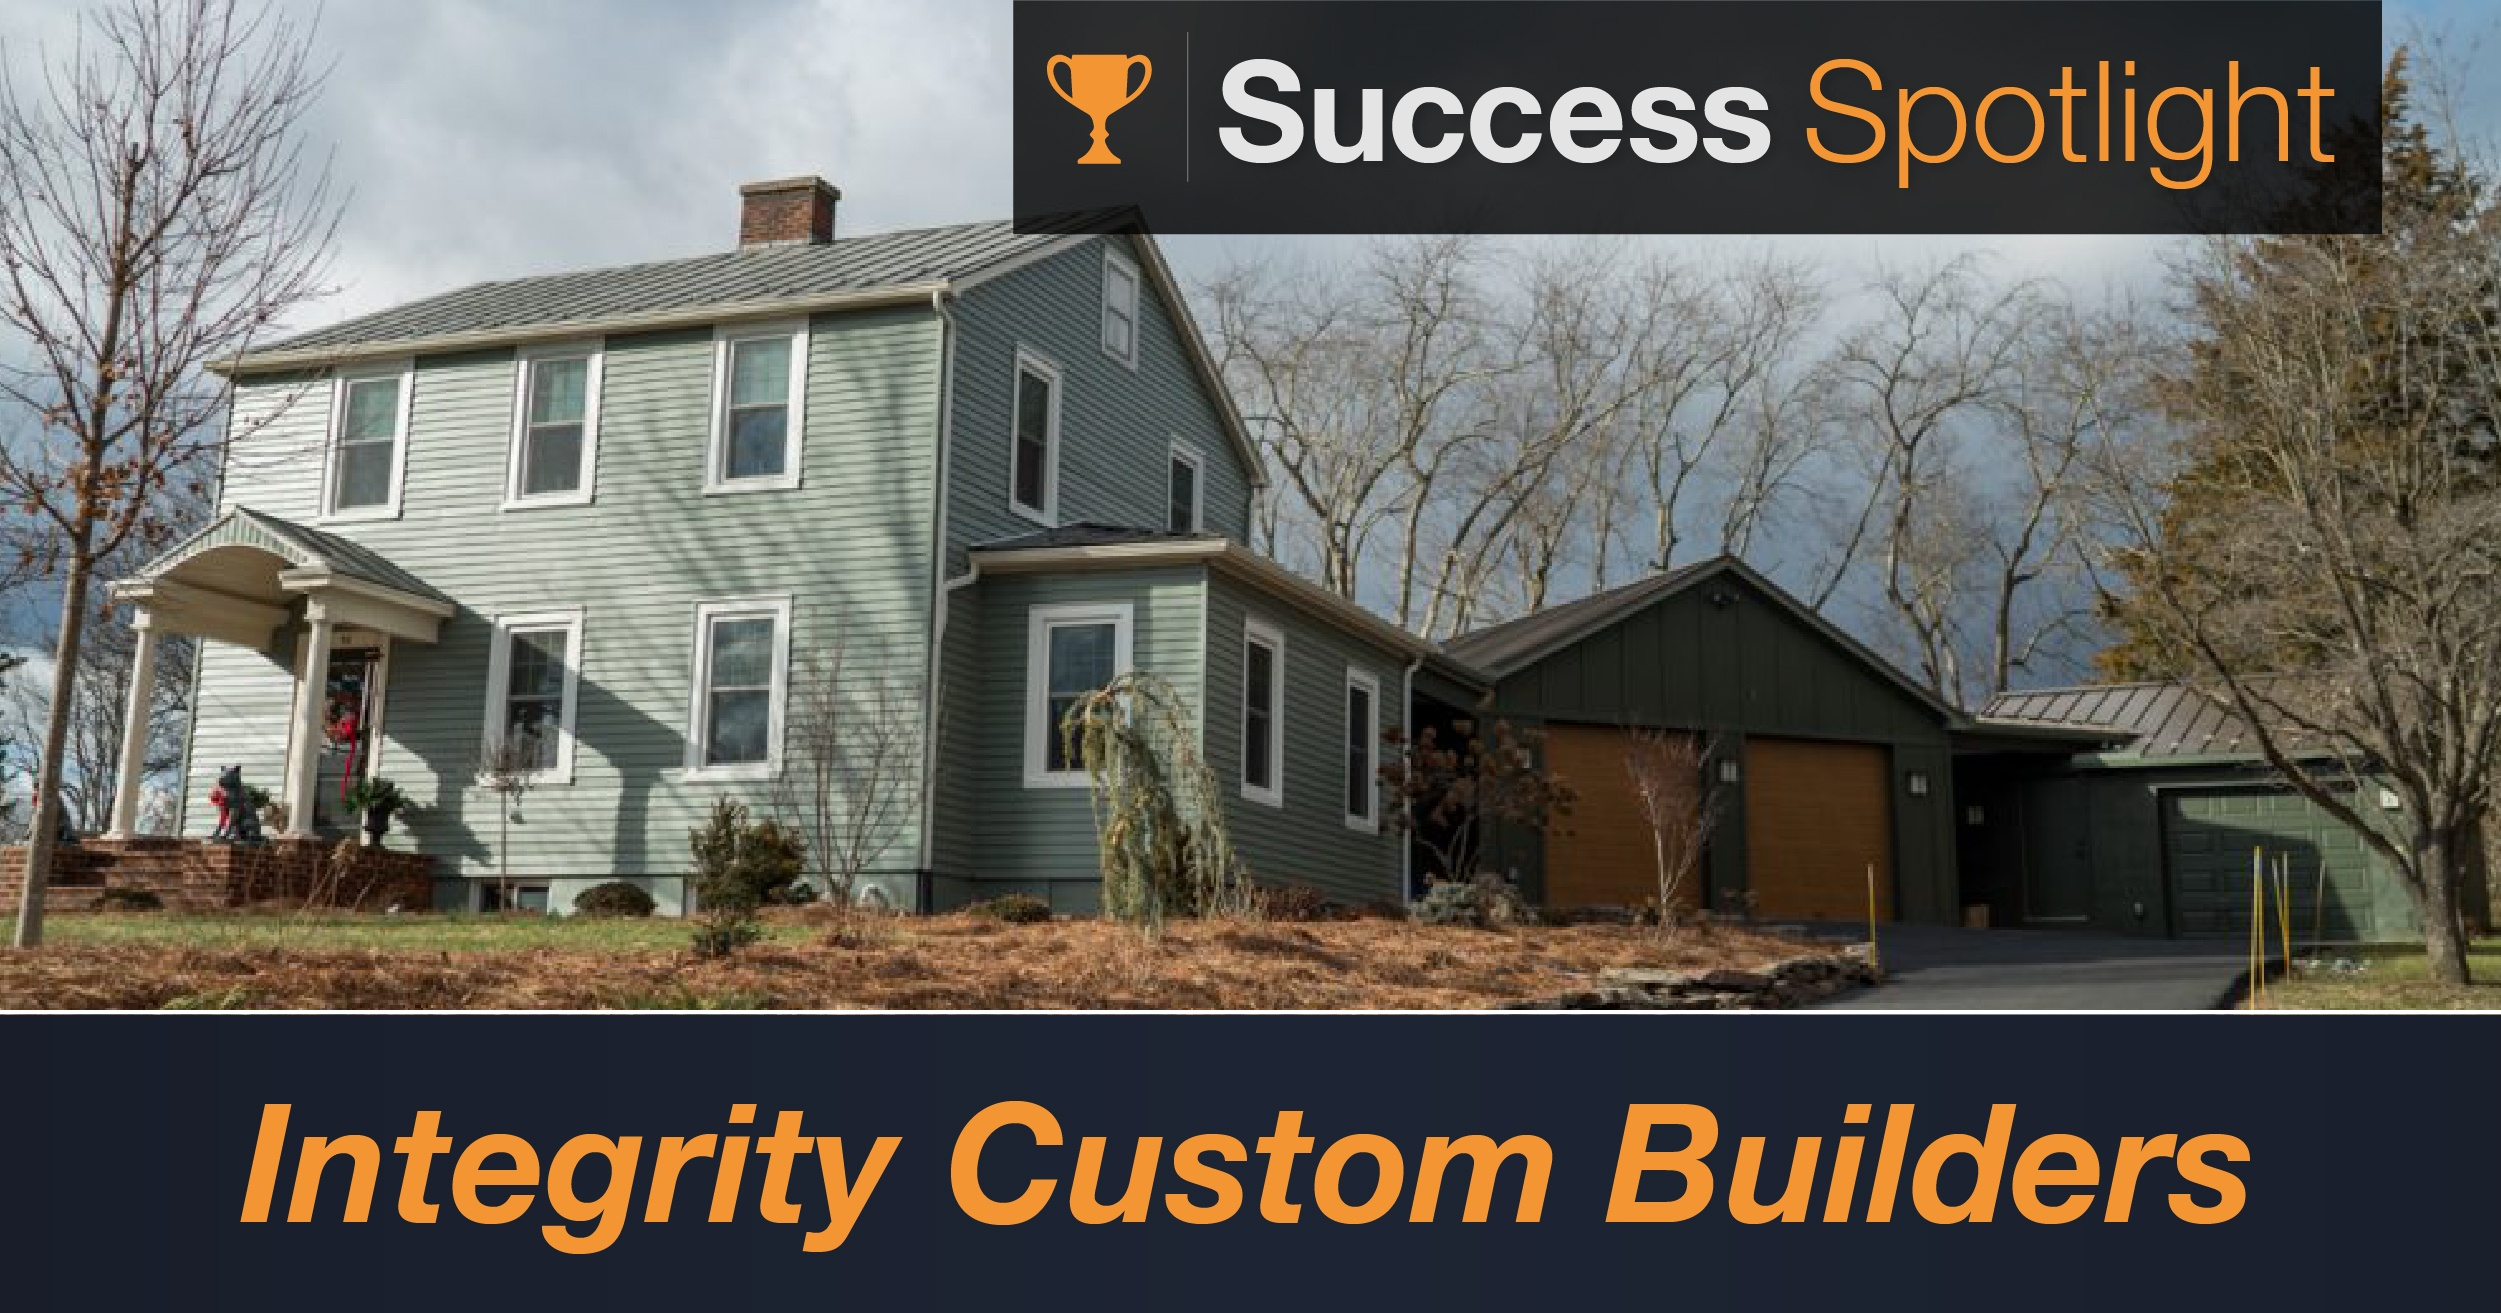 Success Spotlight: Integrity Custom Builders